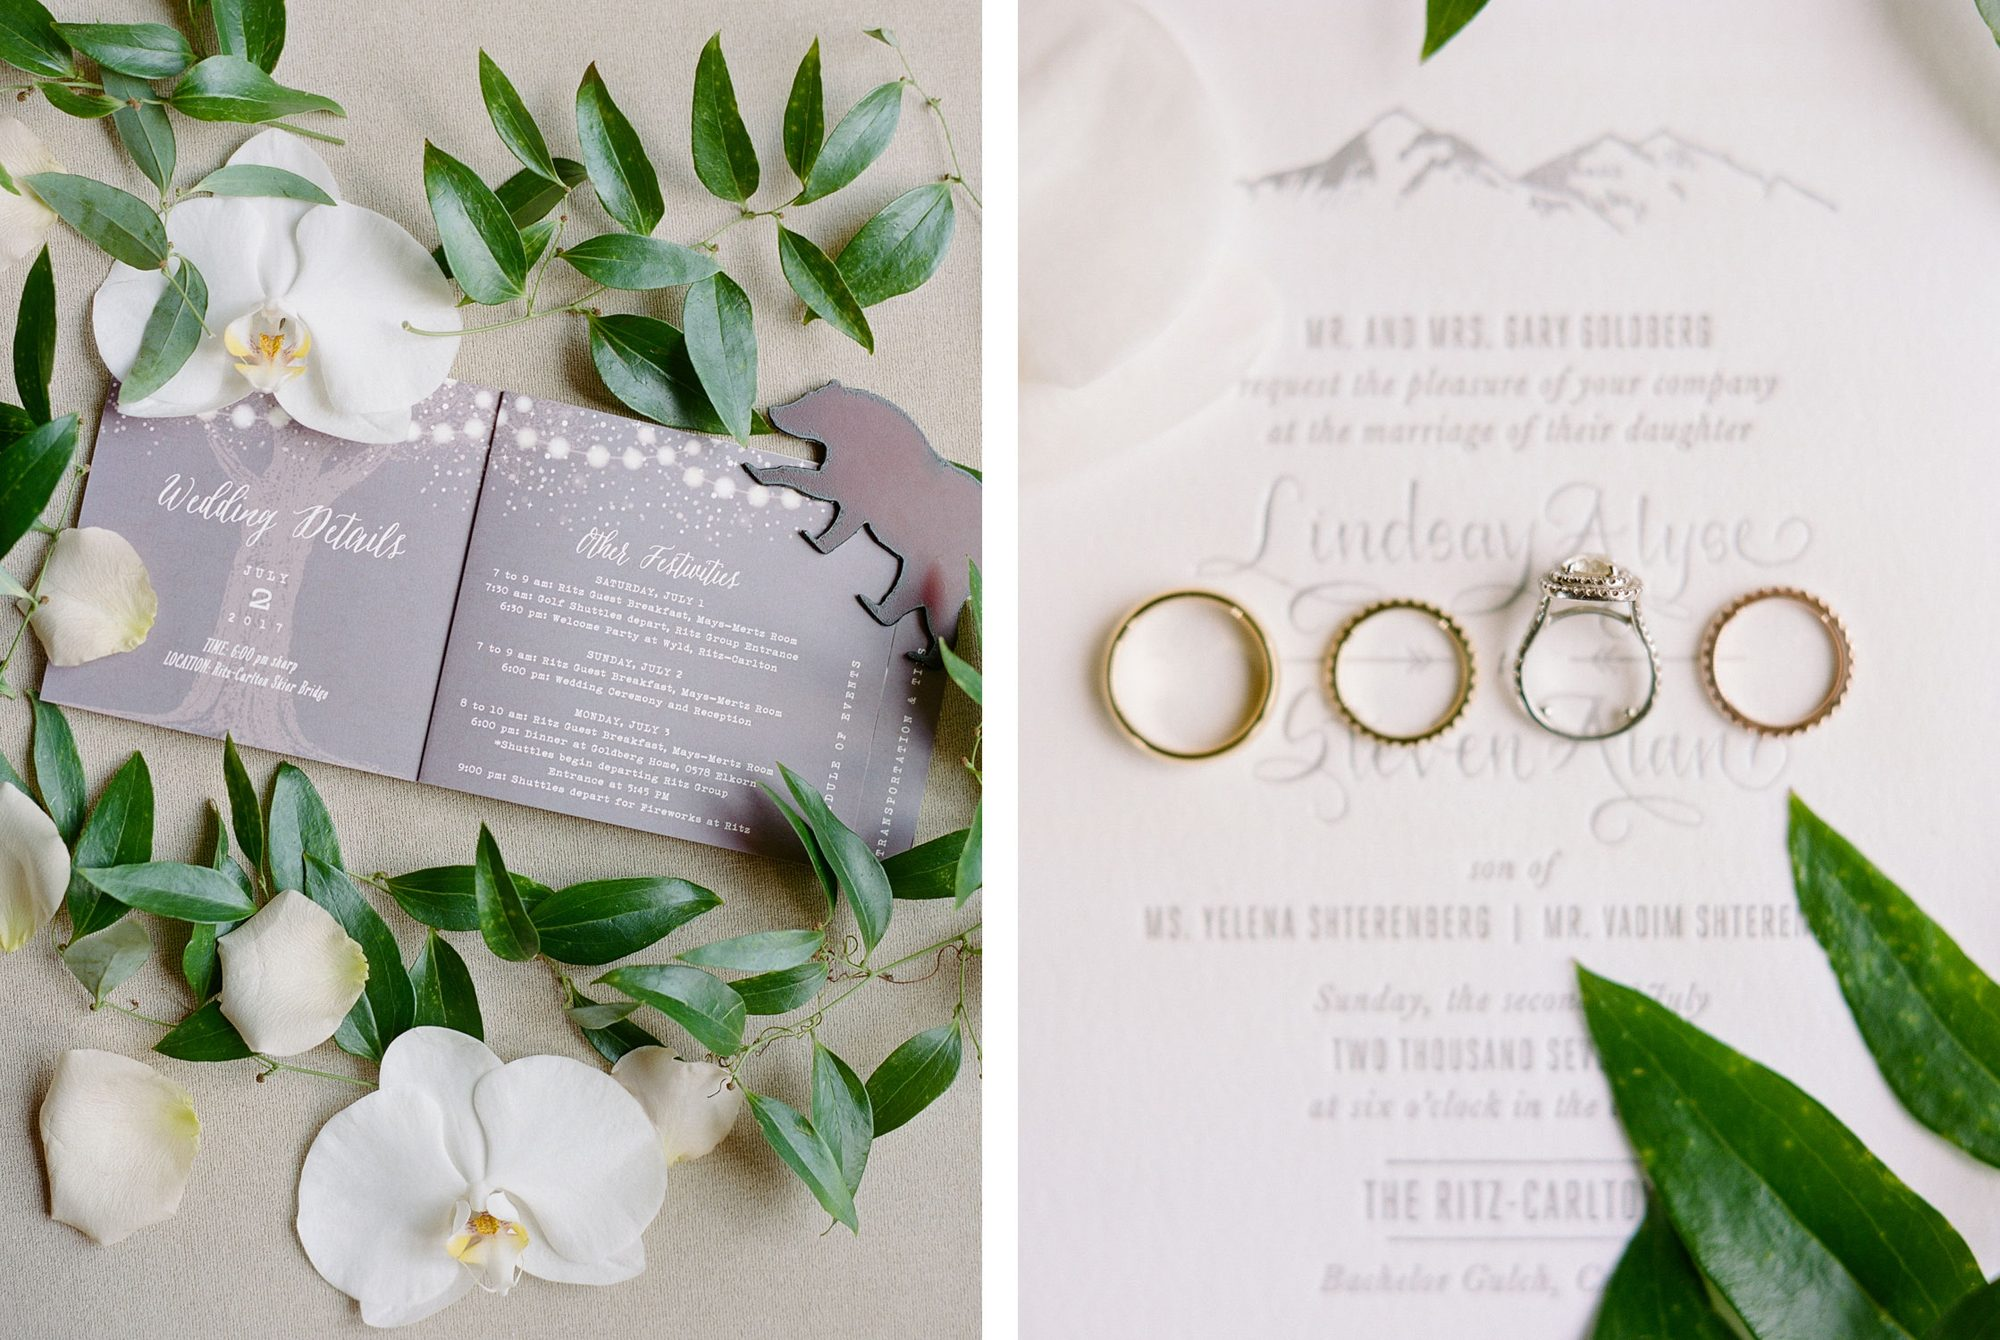 Invitation Suite - A Black Tie Rocky Mountain Destination Wedding